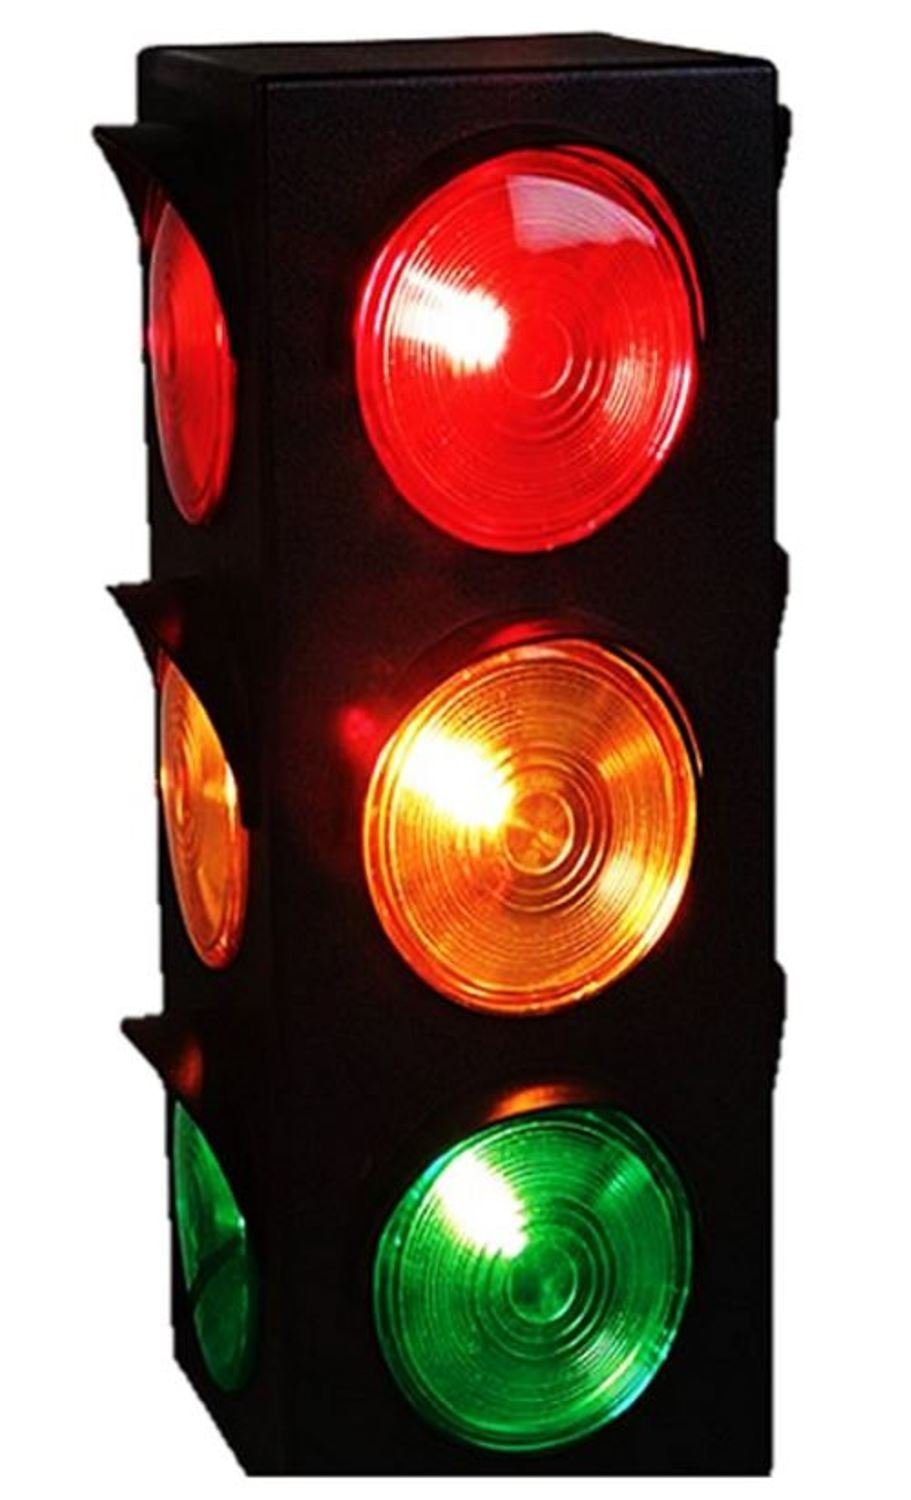 JEWELS FASHION Traffic Light Lamp - Plug-in, Blinking Triple Sided, 12.25 Inch-for Kids Bedrooms, Decorations, Parties, Celebrations, Prop, & Gift and More by JEWELS FASHION